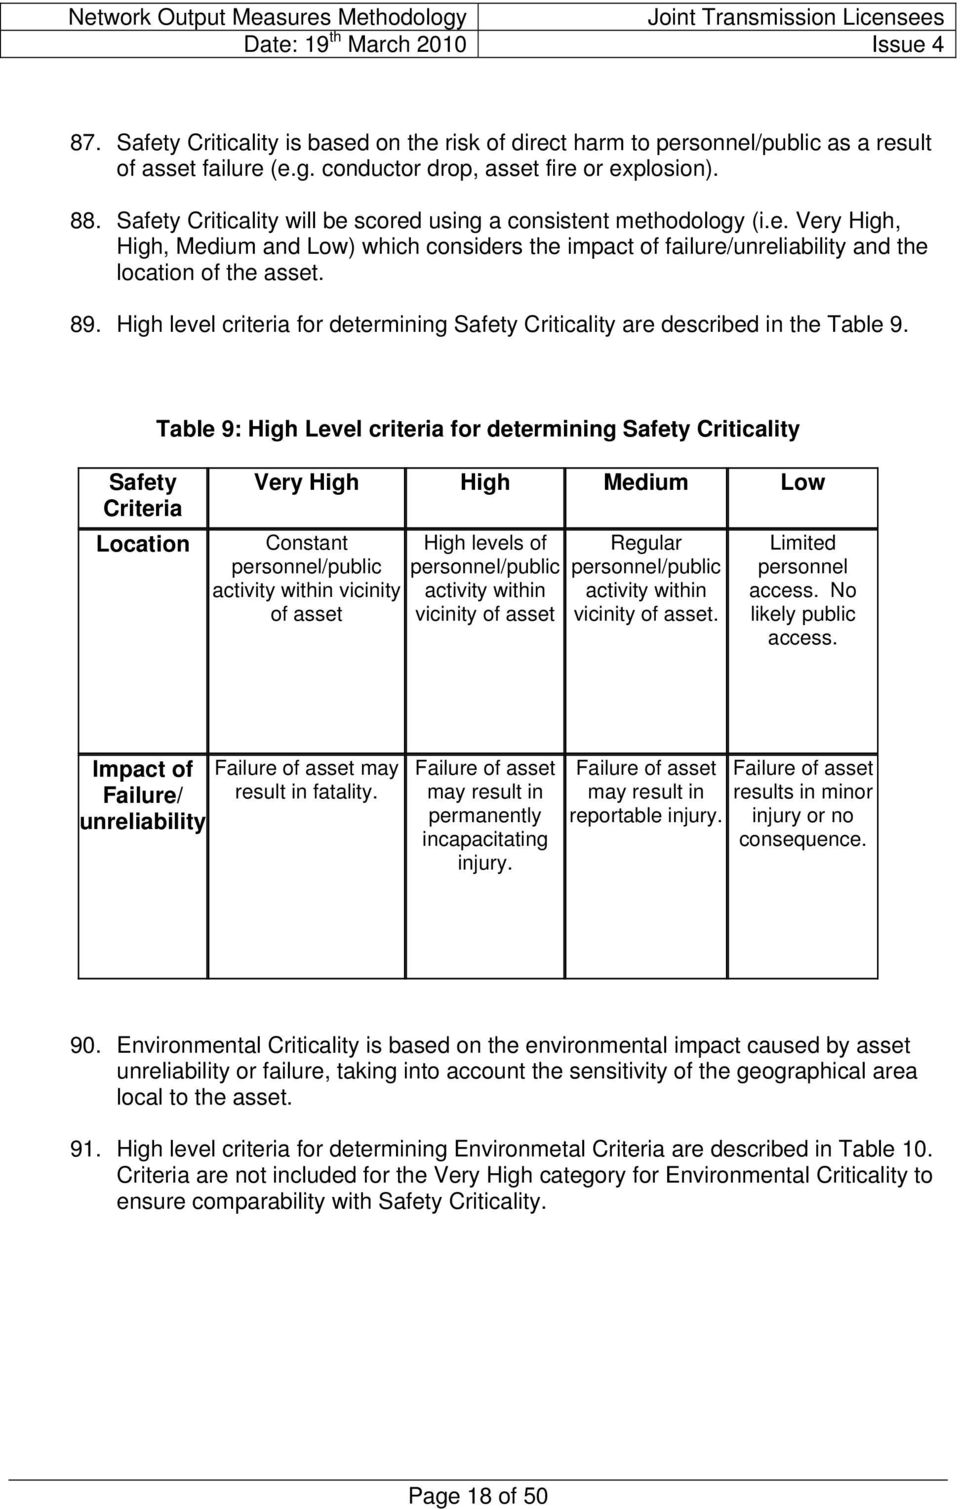 High level criteria for determining Safety Criticality are described in the Table 9.